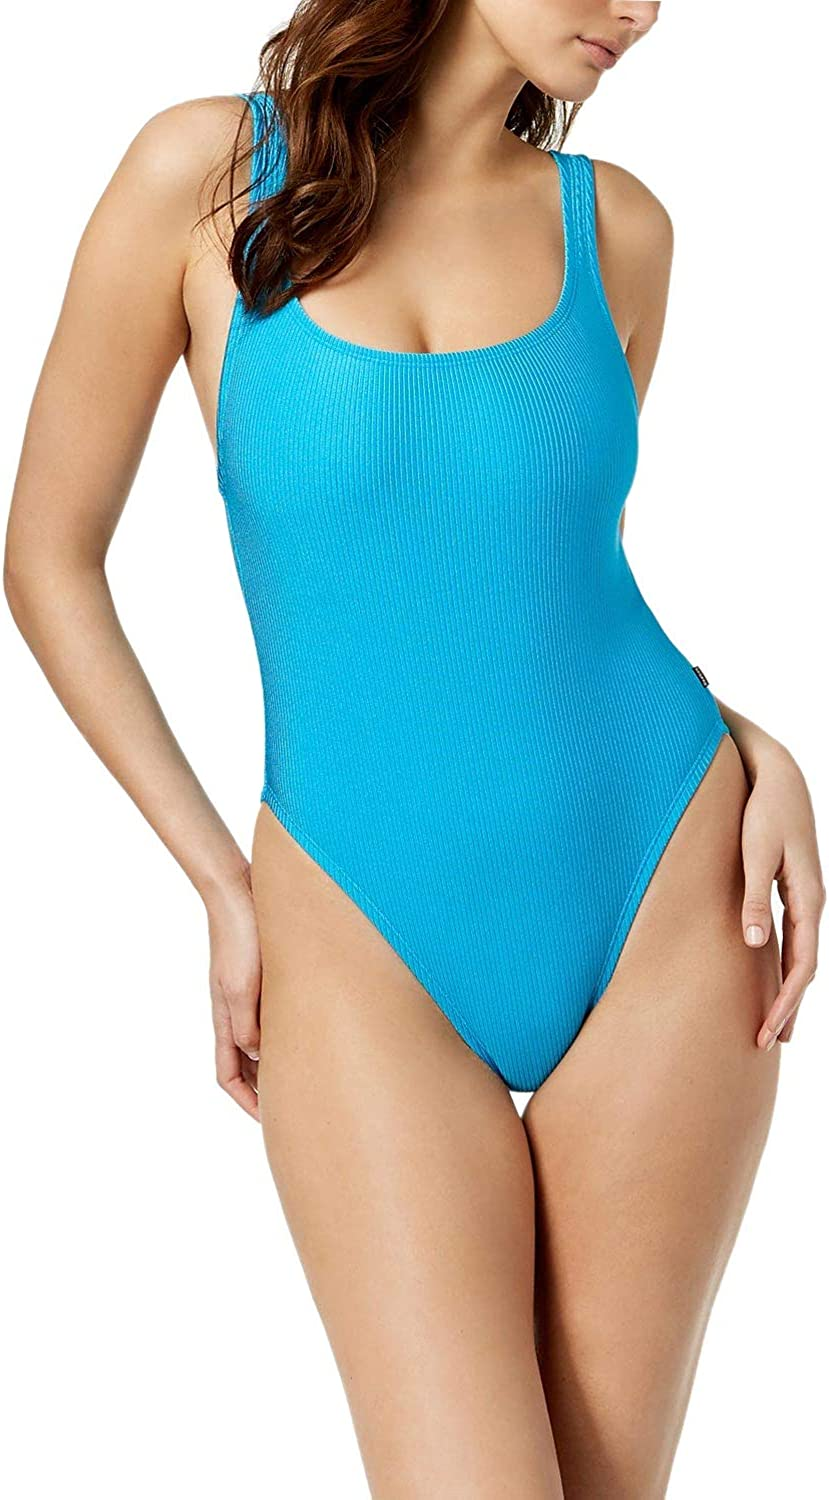 Reebok Turquoise Low Back Ribbed One-Piece Swimsuit M